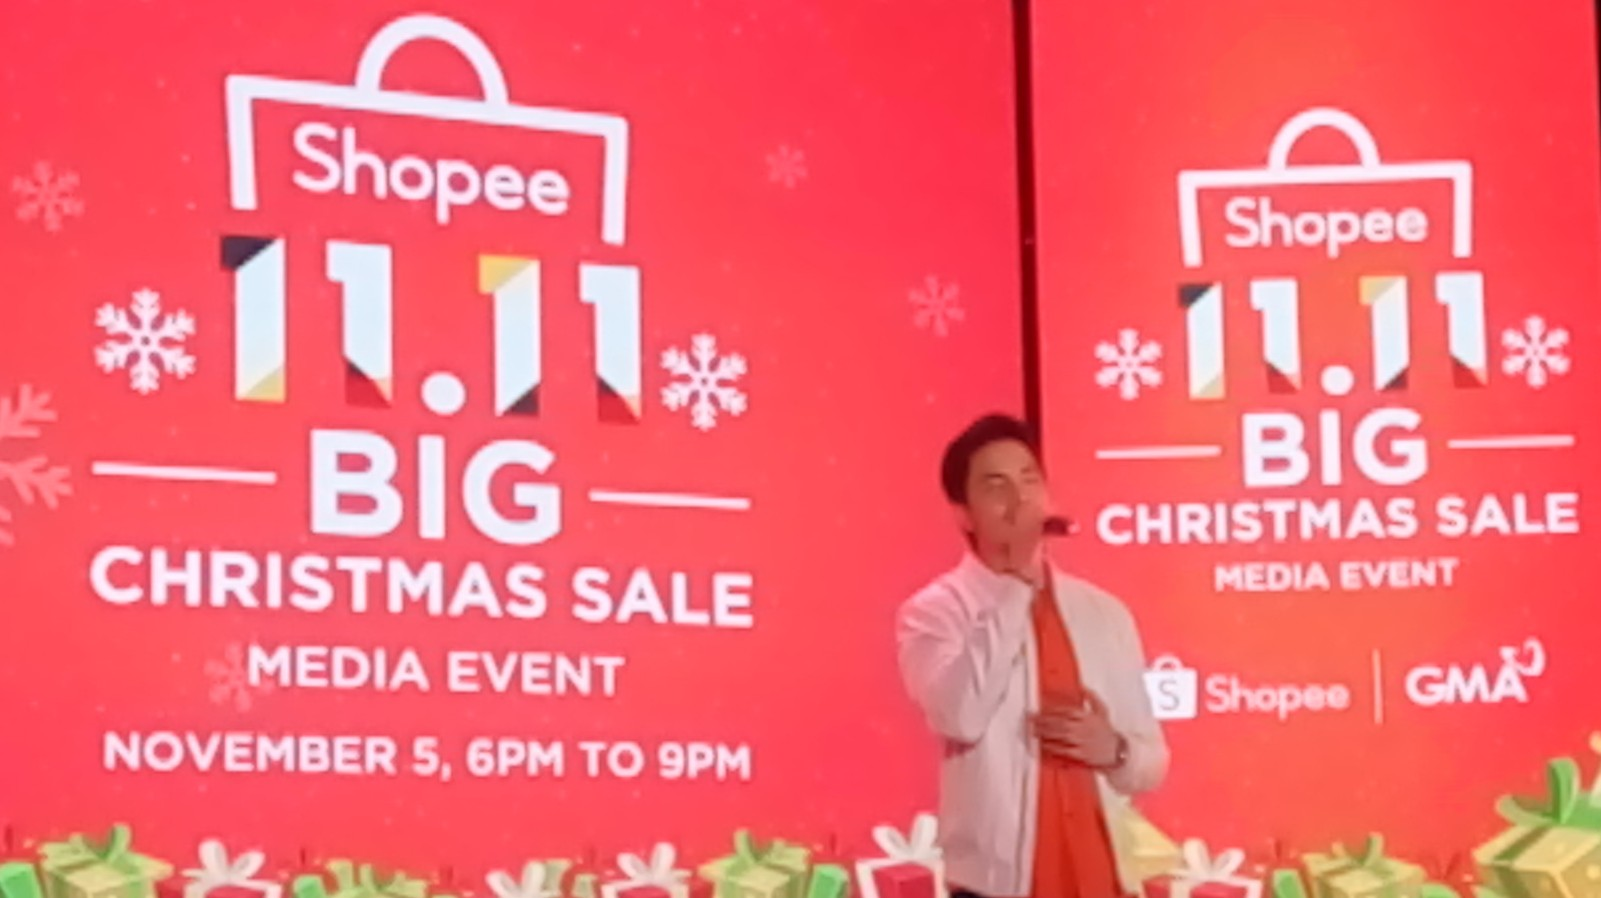 Shopee, Big Christmas Sale, Big TV Special, 2019, GMA7, 11.11